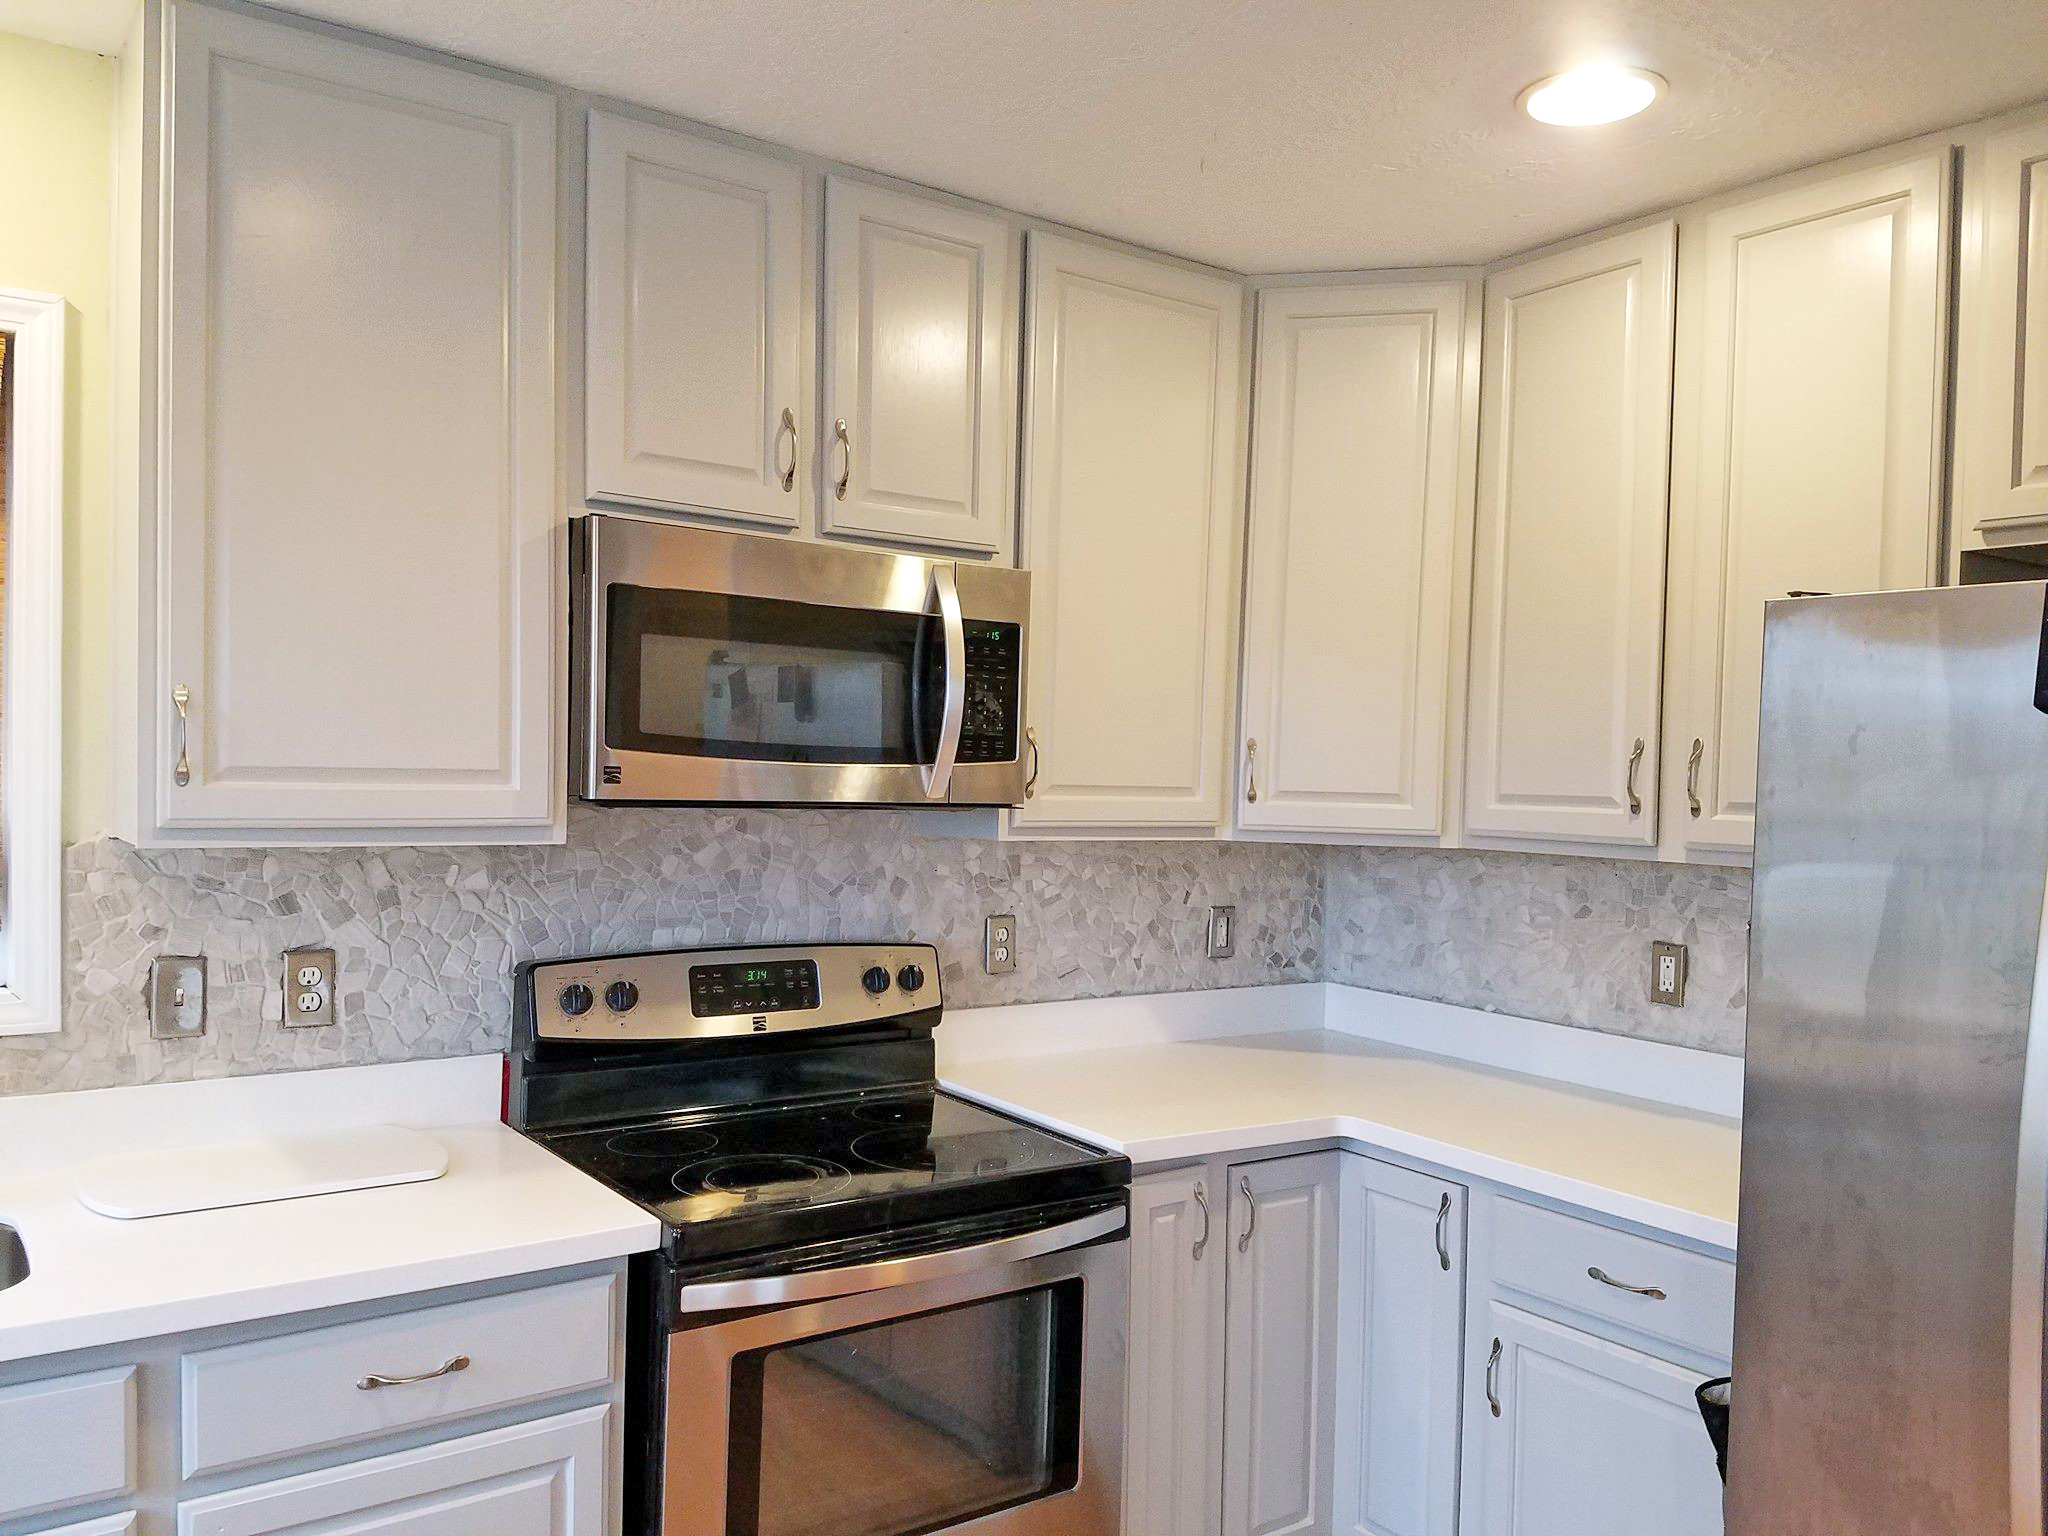 Kitchen Cabinet Painters Roanoke Va Seagull Gray Kitchen Cabinet Makeover General Finishes